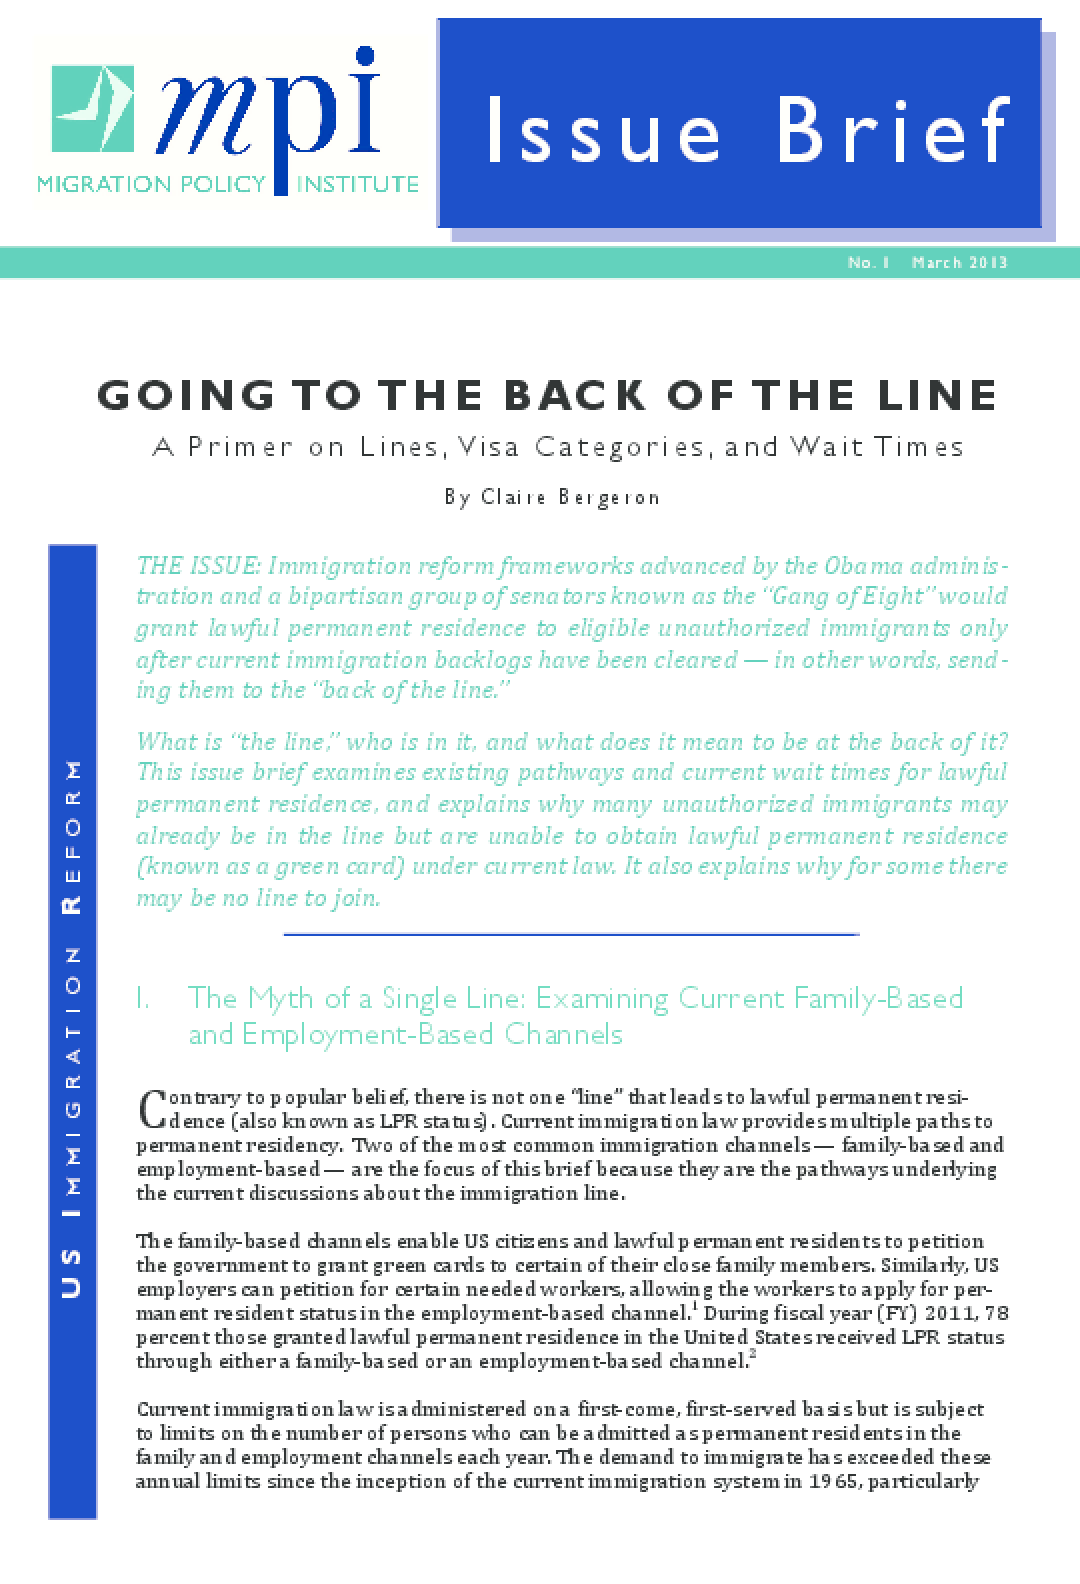 Going to the Back of the Line: A Primer on Lines, Visa Categories, and Wait Times